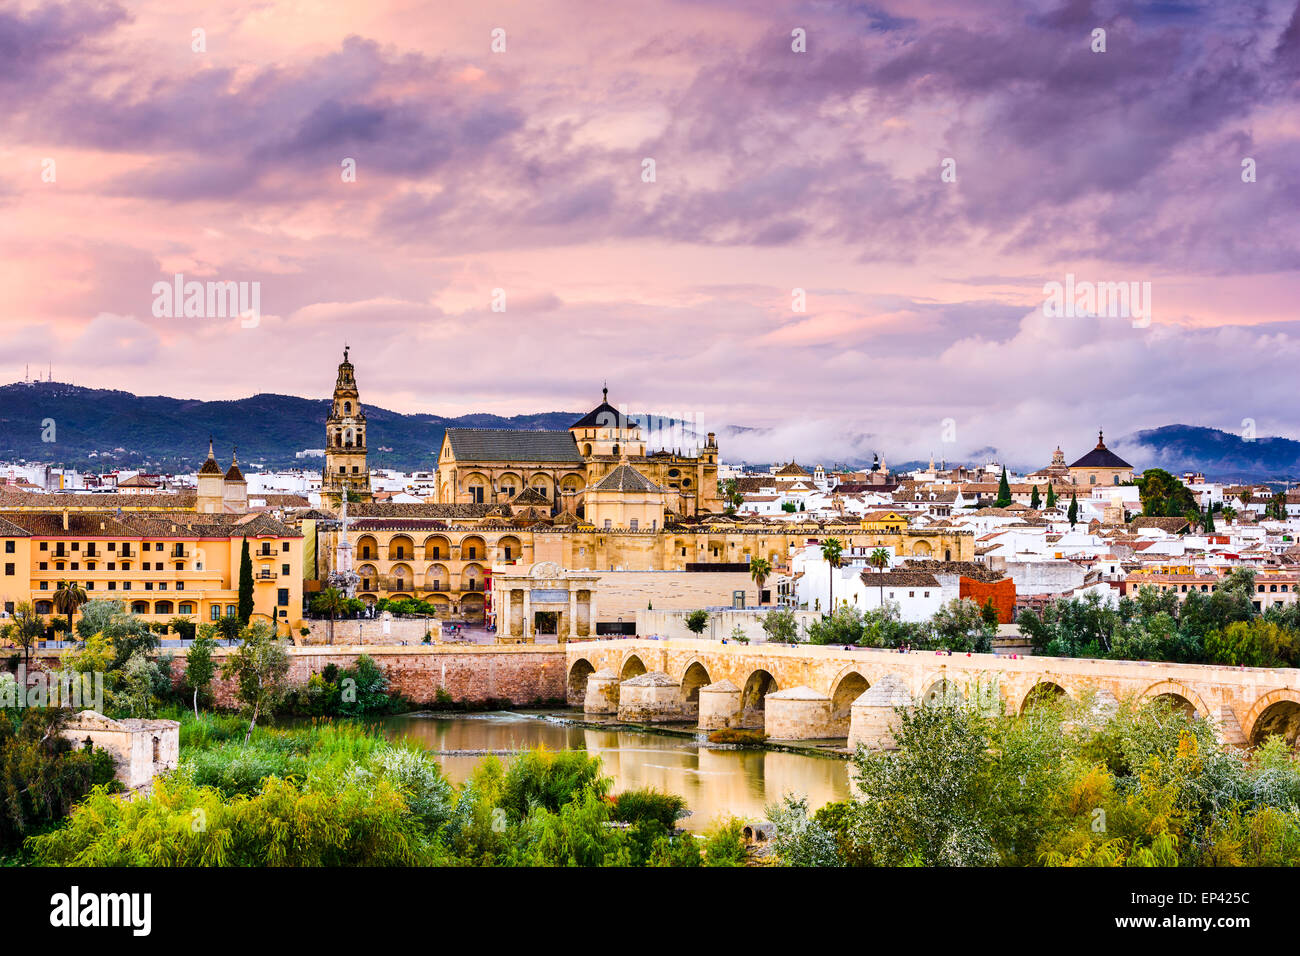 Cordoba, Spain at the Roman Bridge and Mosque-Cathedral on the Guadalquivir River. Stock Photo